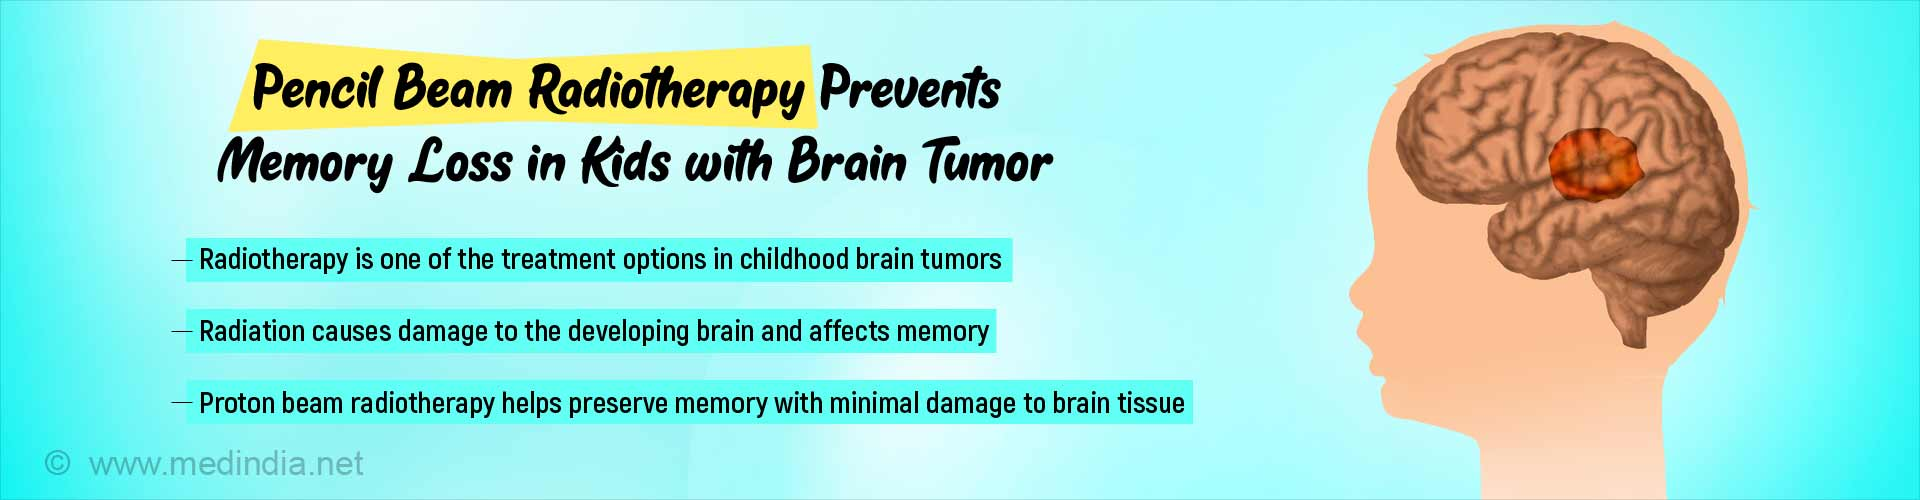 How to Prevent Memory Loss in Kids With Brain Tumors During Radiotherapy